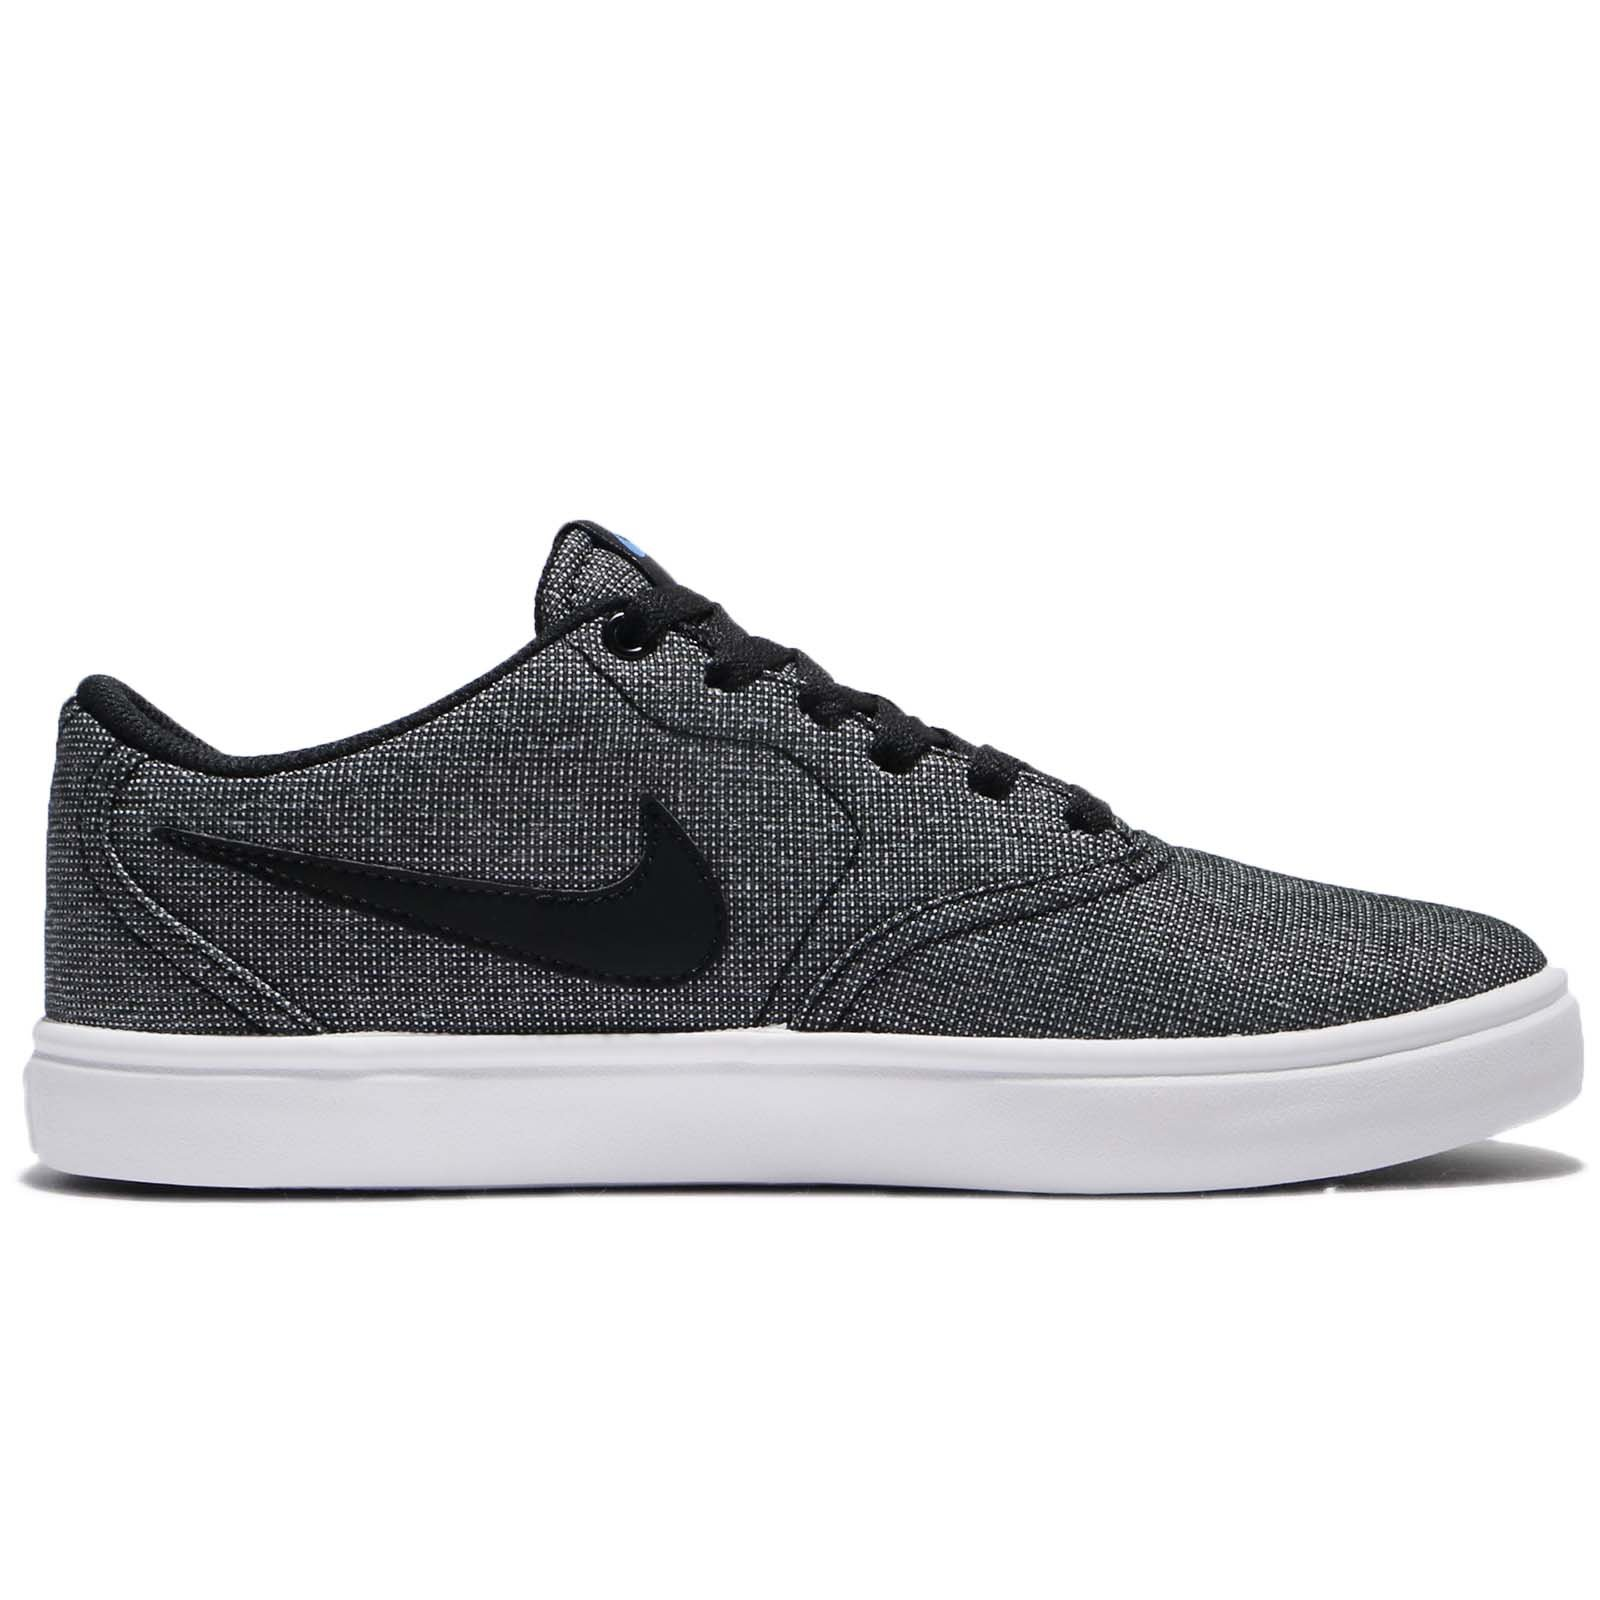 Nike Mens Check Solar Solar Sole Skateboarding Shoes Black 4.5 Medium (D) by Nike (Image #2)